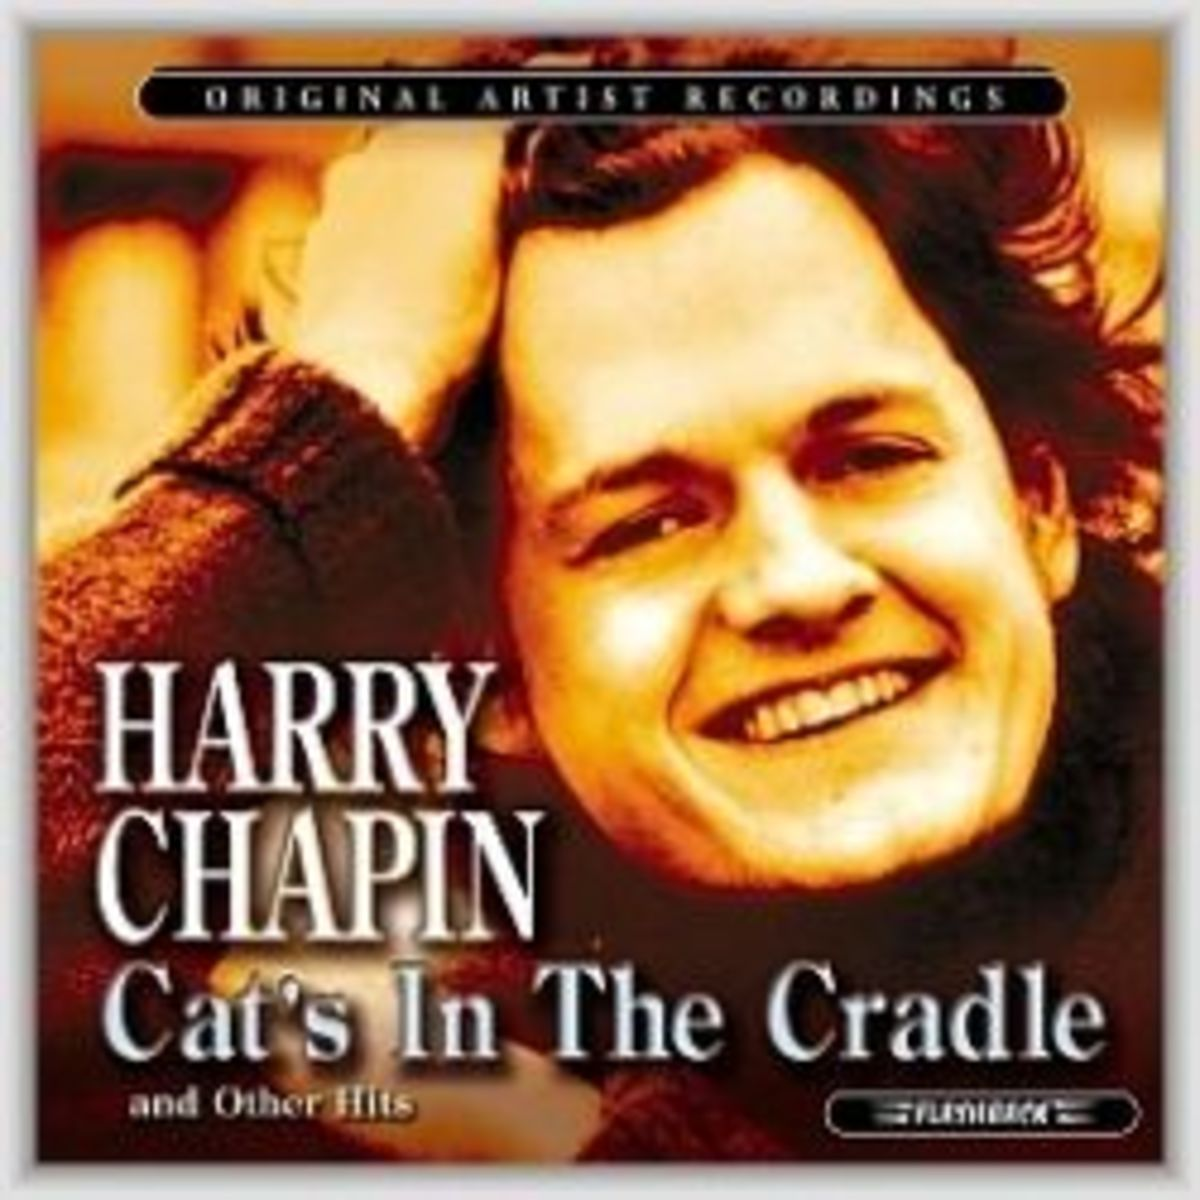 harry chapin cats in the cardle